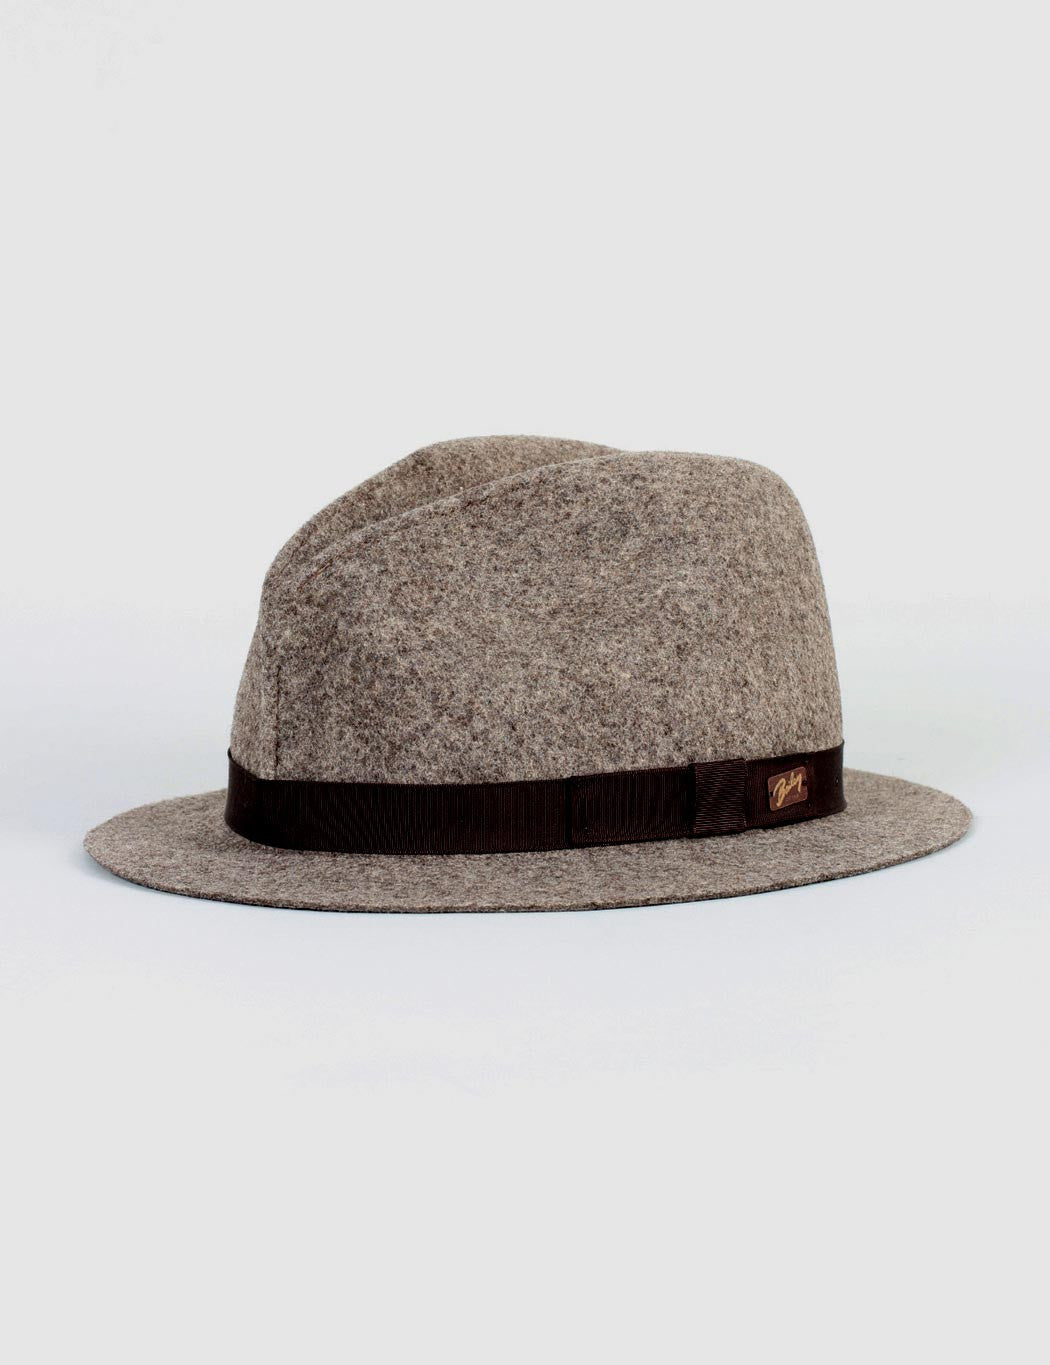 Bailey Dean Unstructured Fedora - Dark Brown - Dark Brown / L (58-59cm)